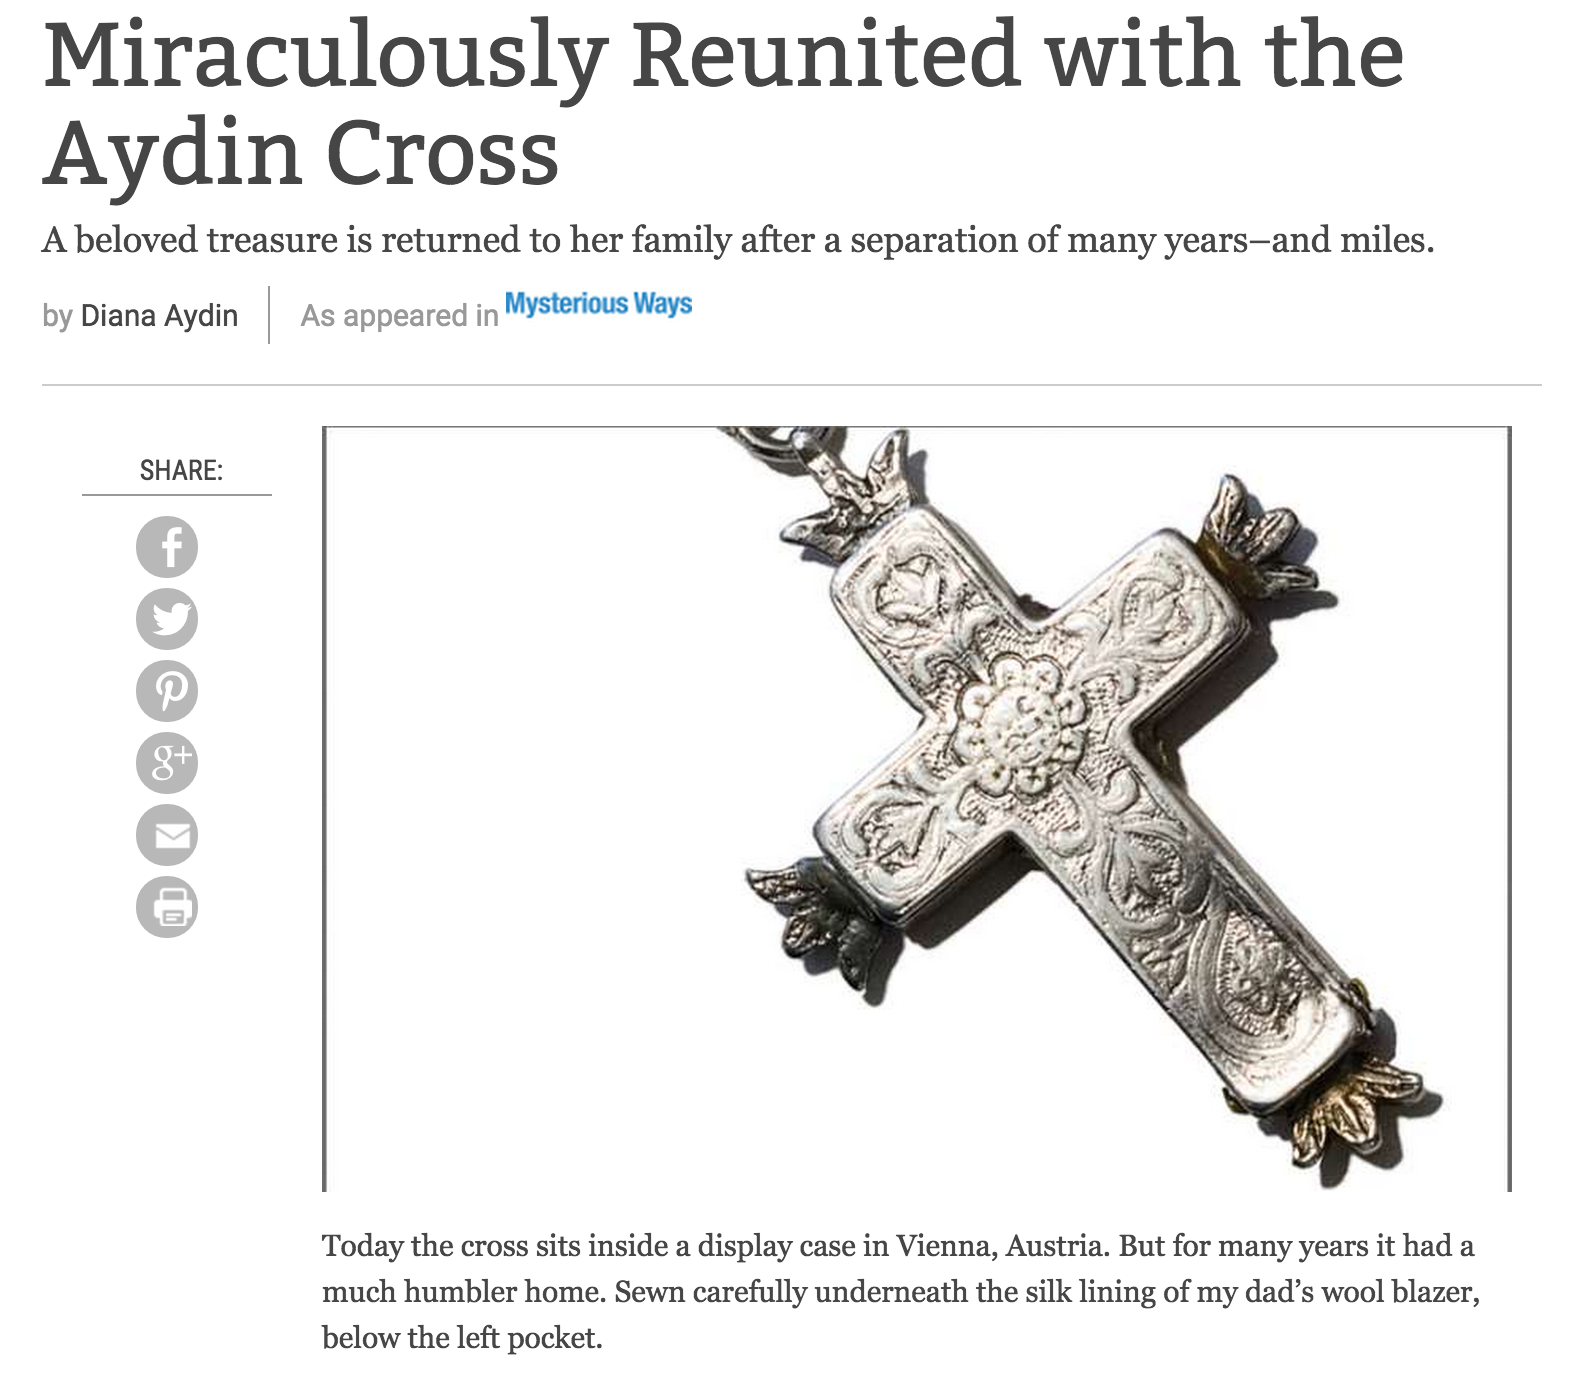 Miraculously Reunited with the Aydin Cross